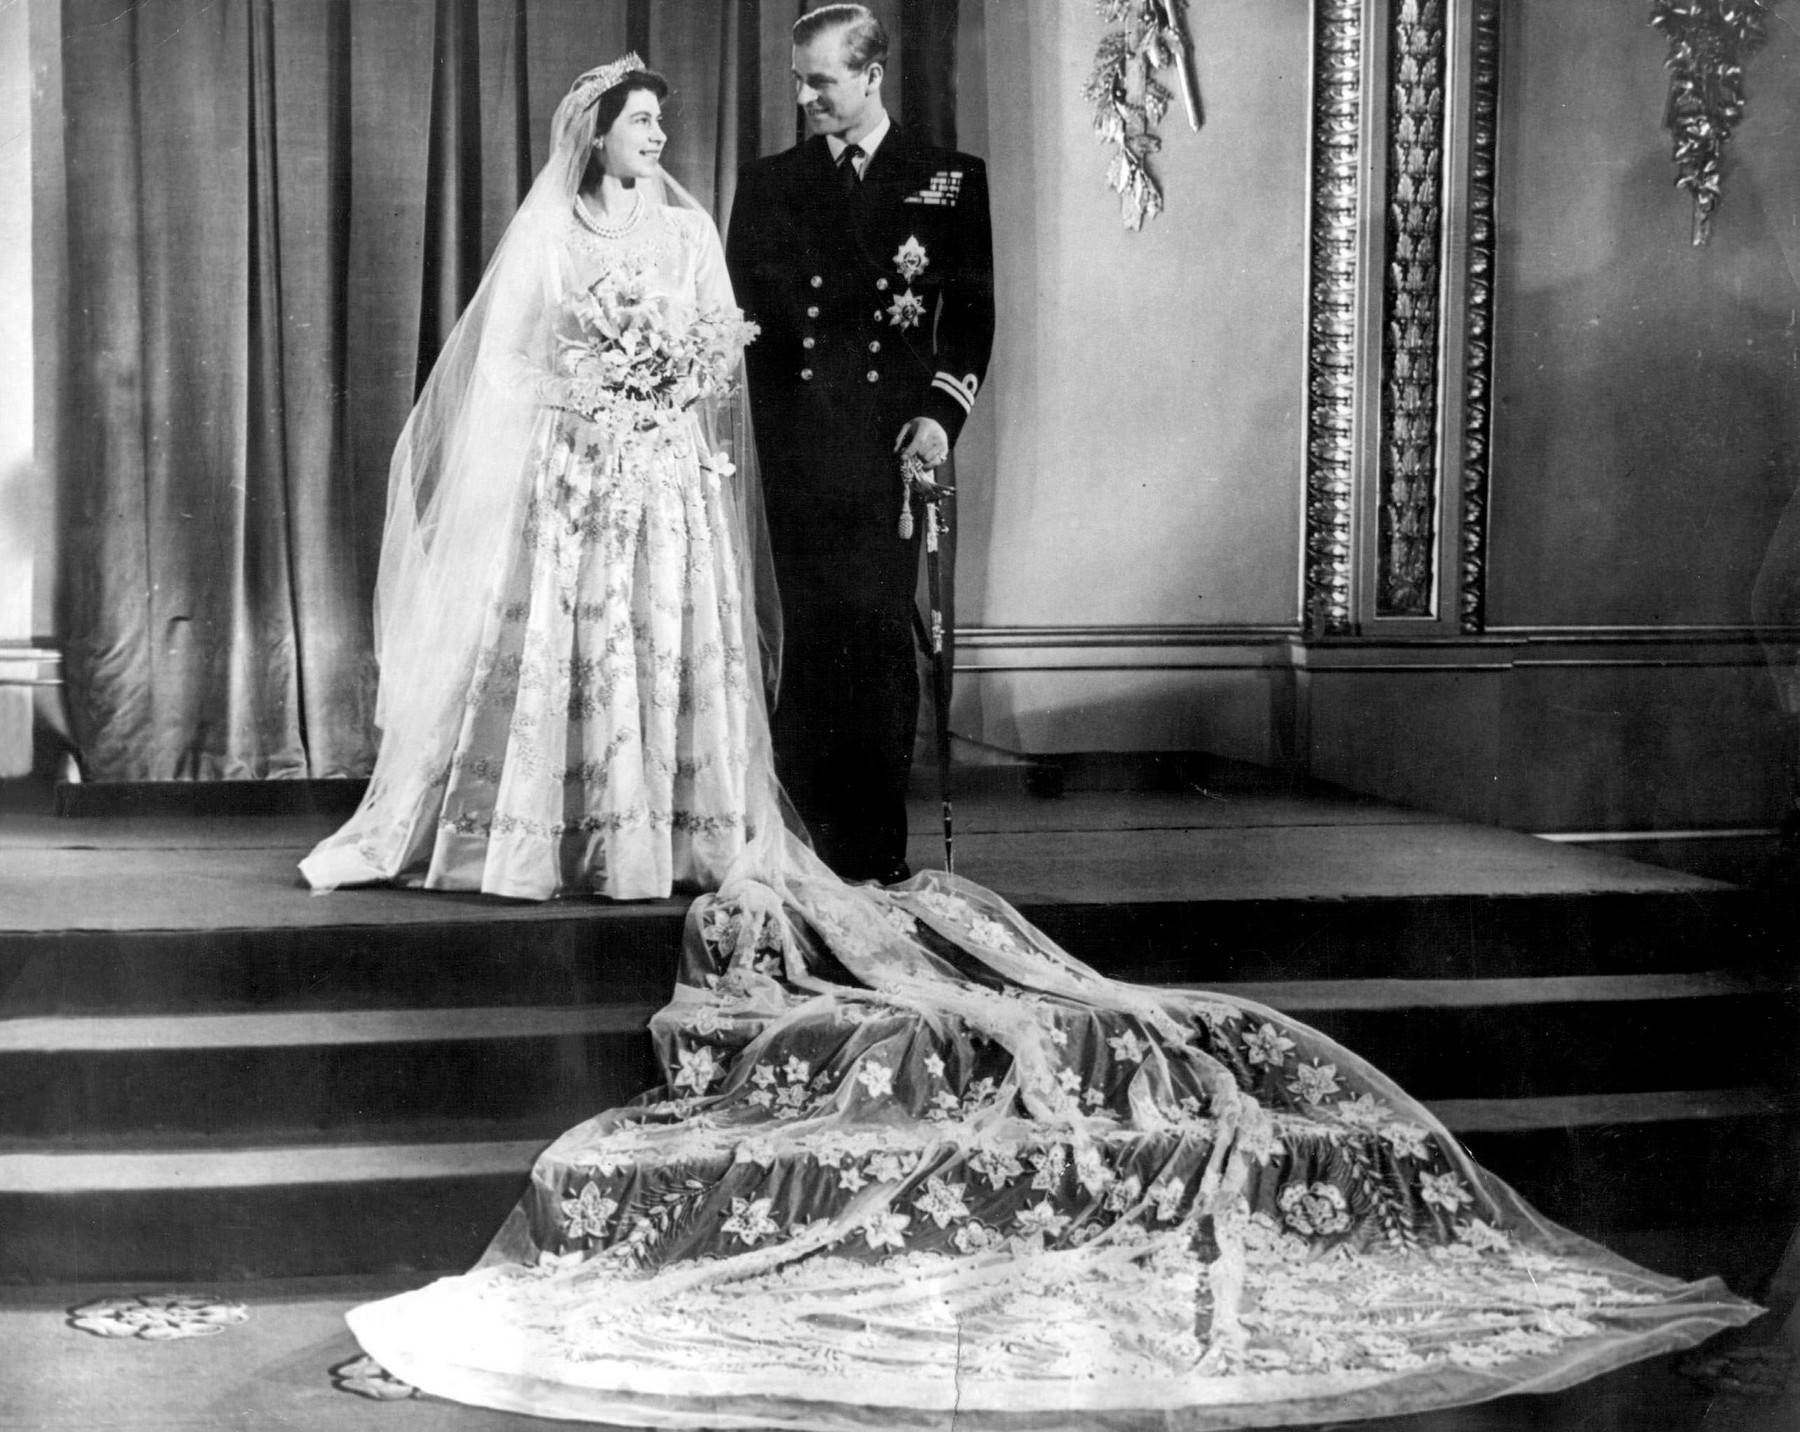 Nov 20, 1947 - London, UK - The elder daughter of King George VI and Queen Elizabeth, ELIZABETH WINDSOR (named Elizabeth II) PRINCE PHILIP, Duke of Edinburgh (born Prince Philip of Greece and Denmark) married on 20 November 1947. The wedding was seen as the first glimmer of hope in a post-war Commonwealth, and, though the royal couple received over 2,500 wedding gifts from around the world, rationing required that the Princess save up her ration coupons to buy the material for her wedding dress.,Image: 210143273, License: Rights-managed, Restrictions: , Model Release: no, Credit line: KEYSTONE Pictures USA / Zuma Press / Profimedia